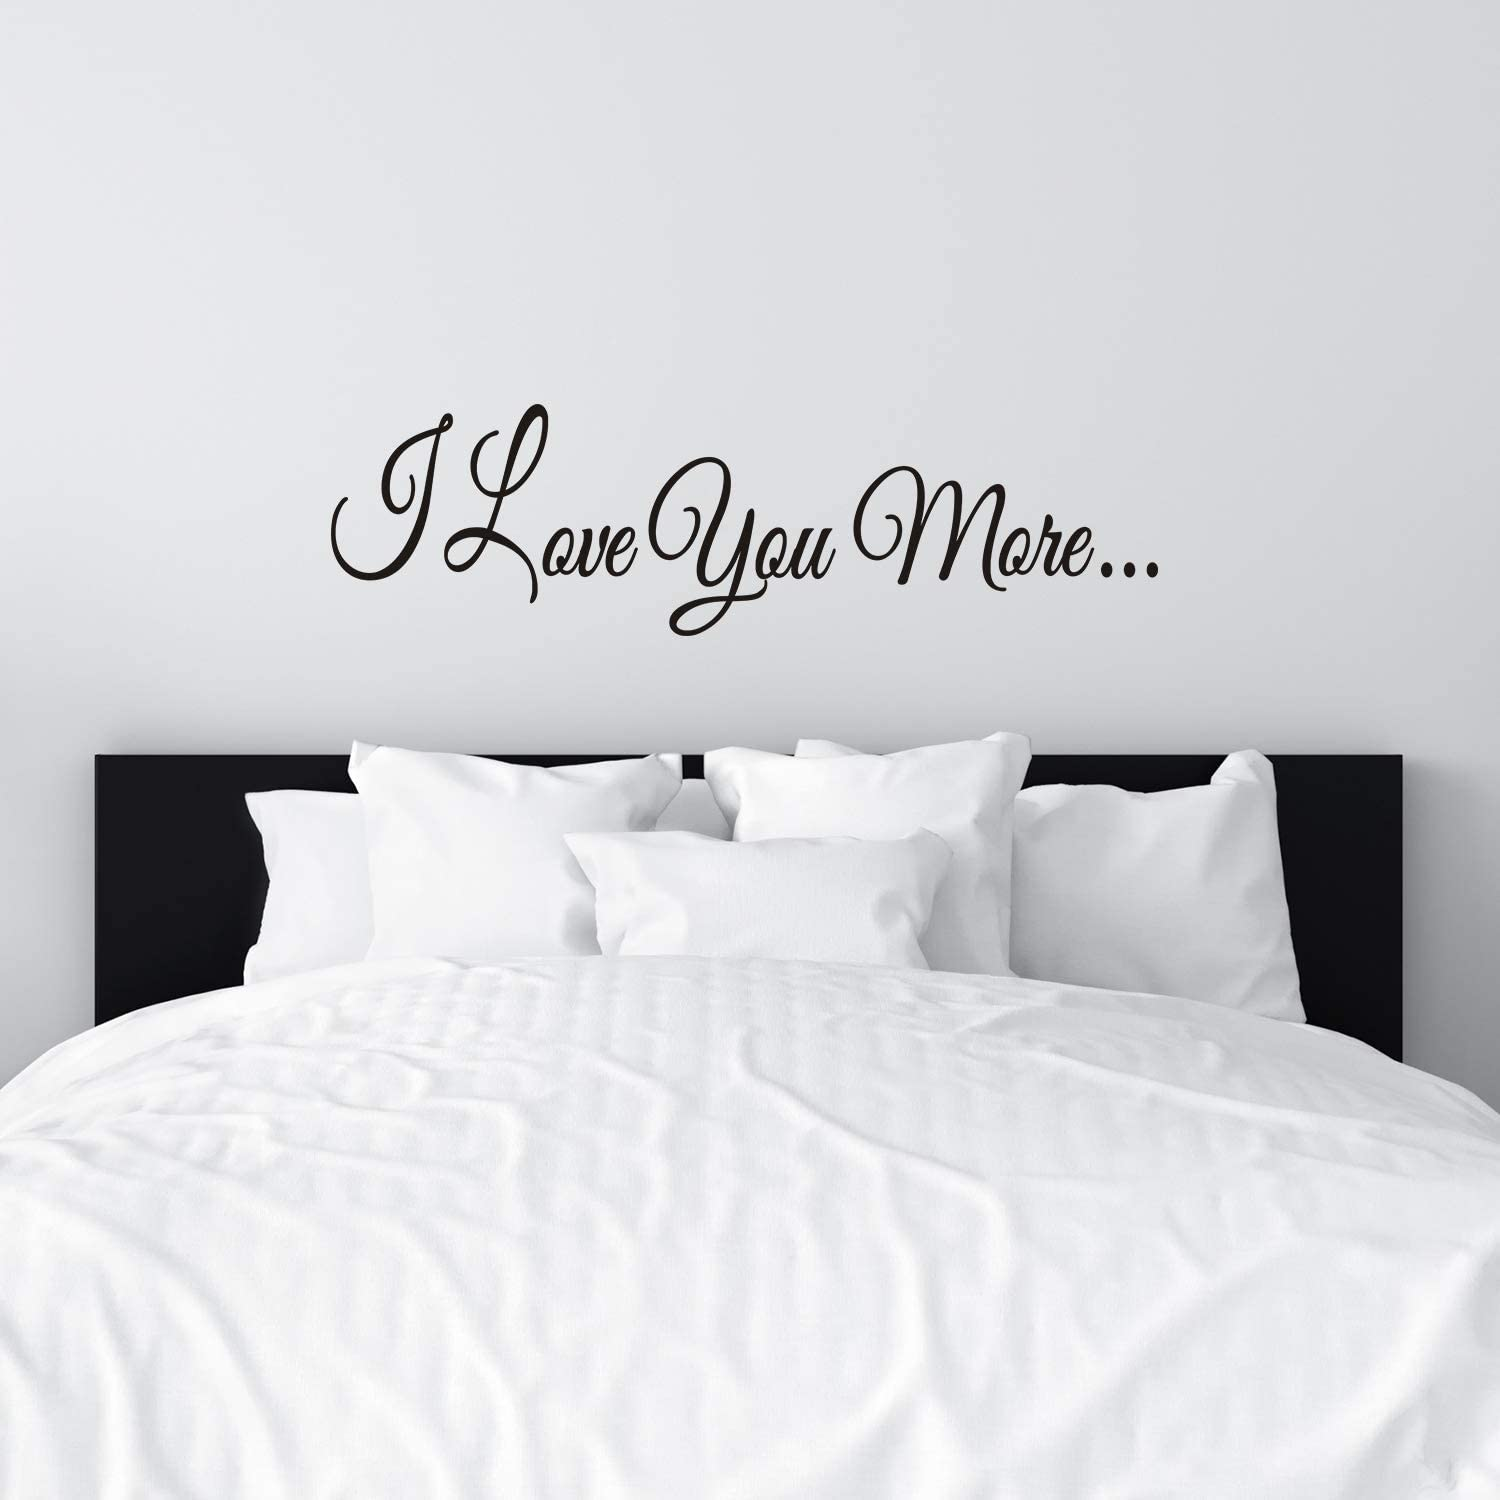 VODOE Wall Decals for Women, Bedroom Wall Decals, Inspirational Quotes Family Bathroom Church Wedding Marriage Romantic Couple Life Sayings Poster Home Art Decor Vinyl Sticker I Love You More 25